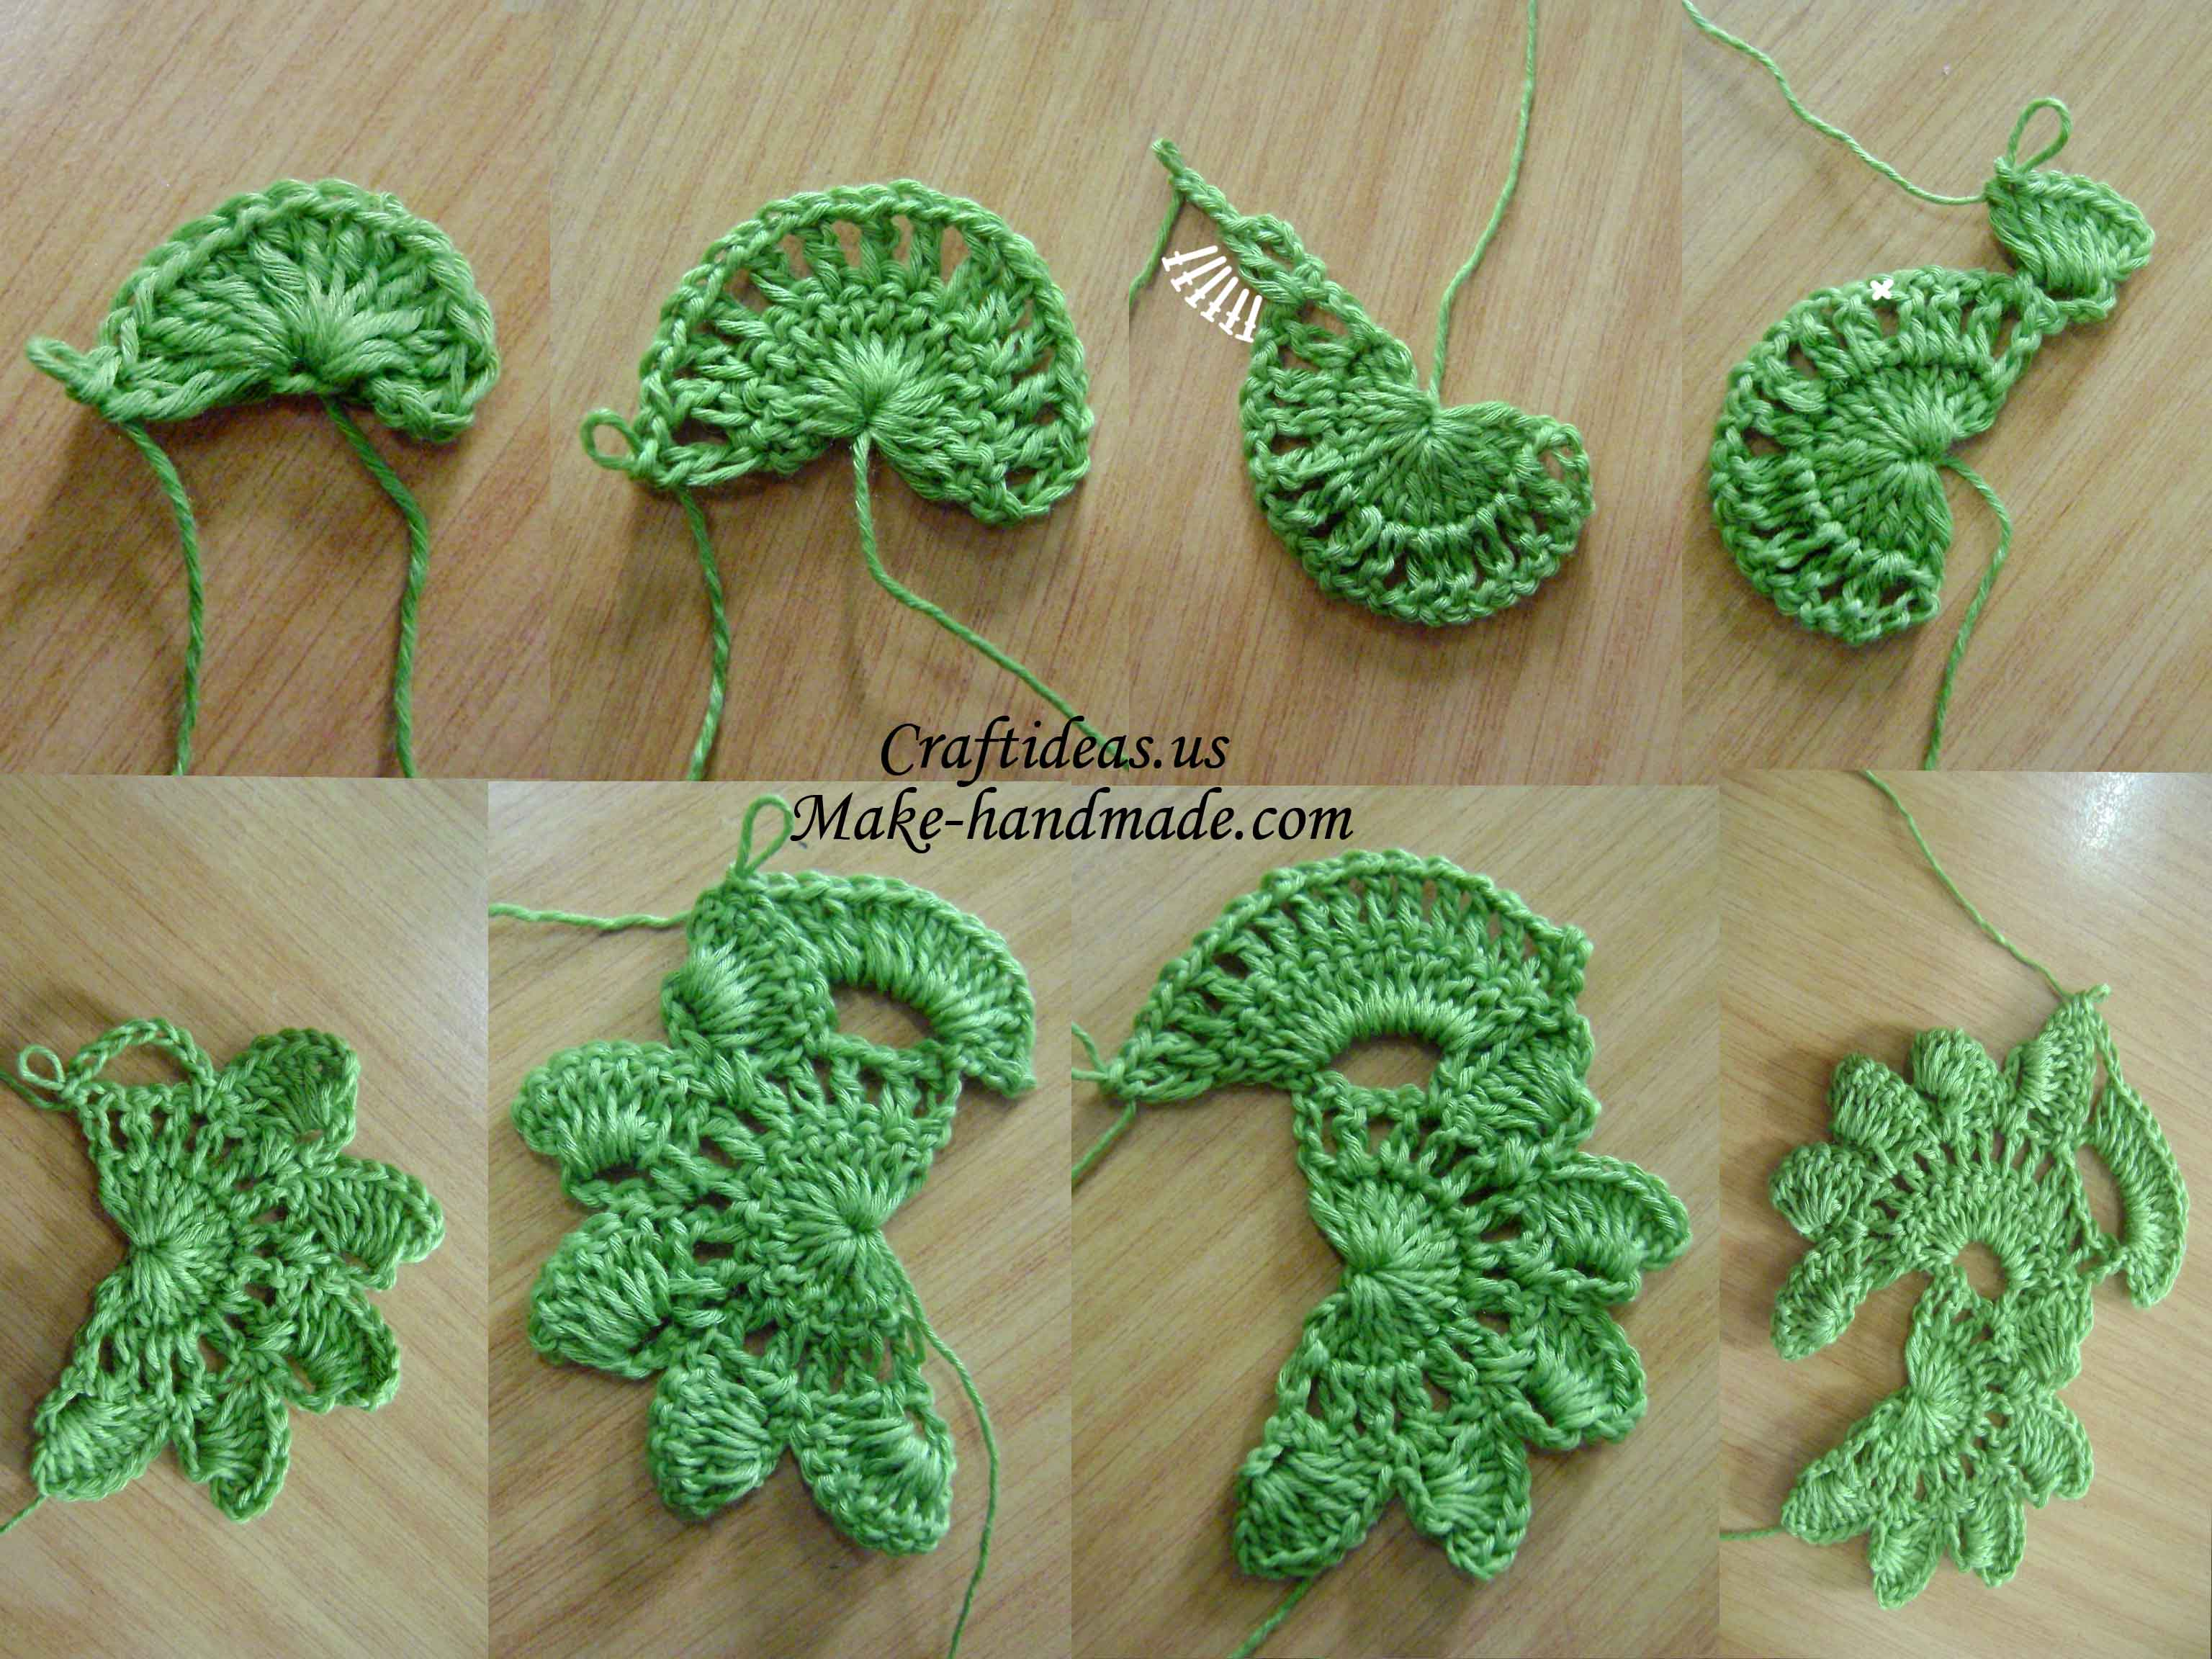 Crocheting Tutorials : crochet flower strip tutorial